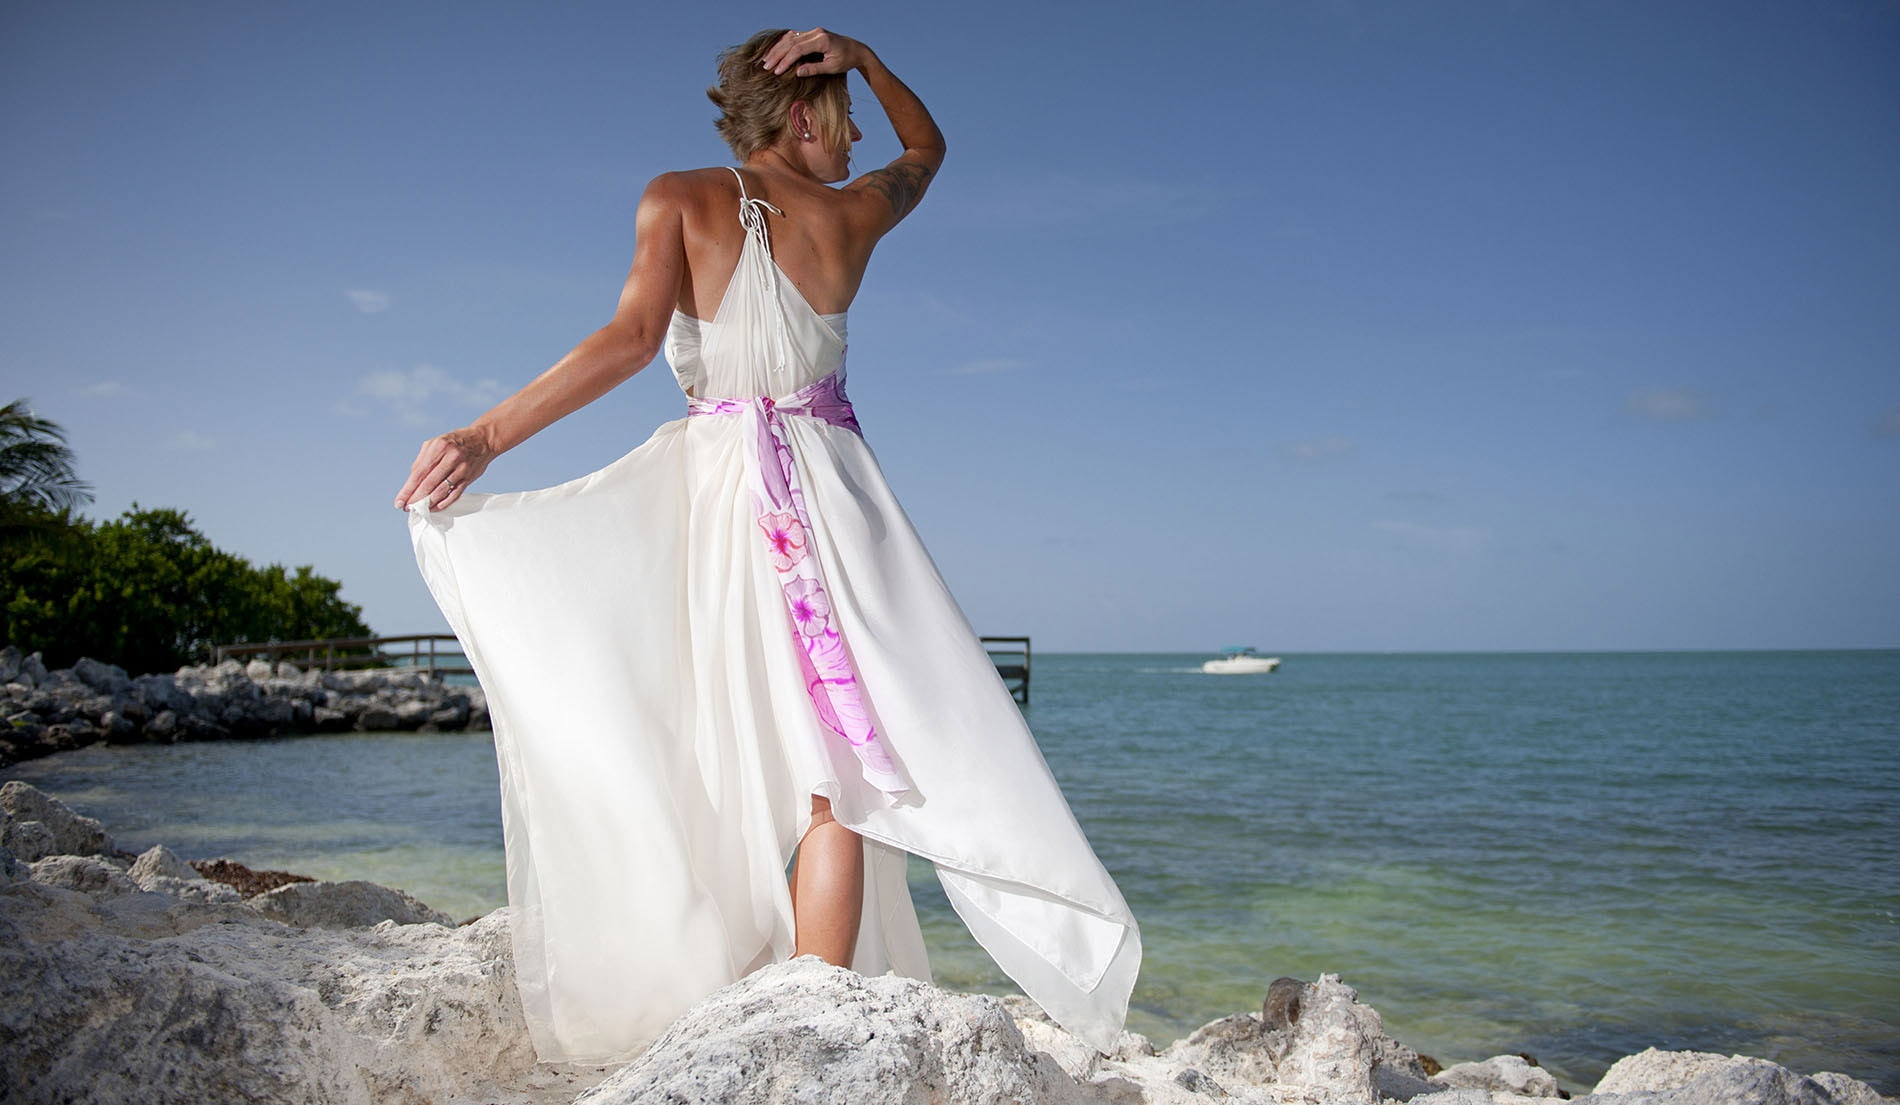 Asymmetrical Sash Second Marriage Weeding Dresses Beach - Veronica - Look 8 back